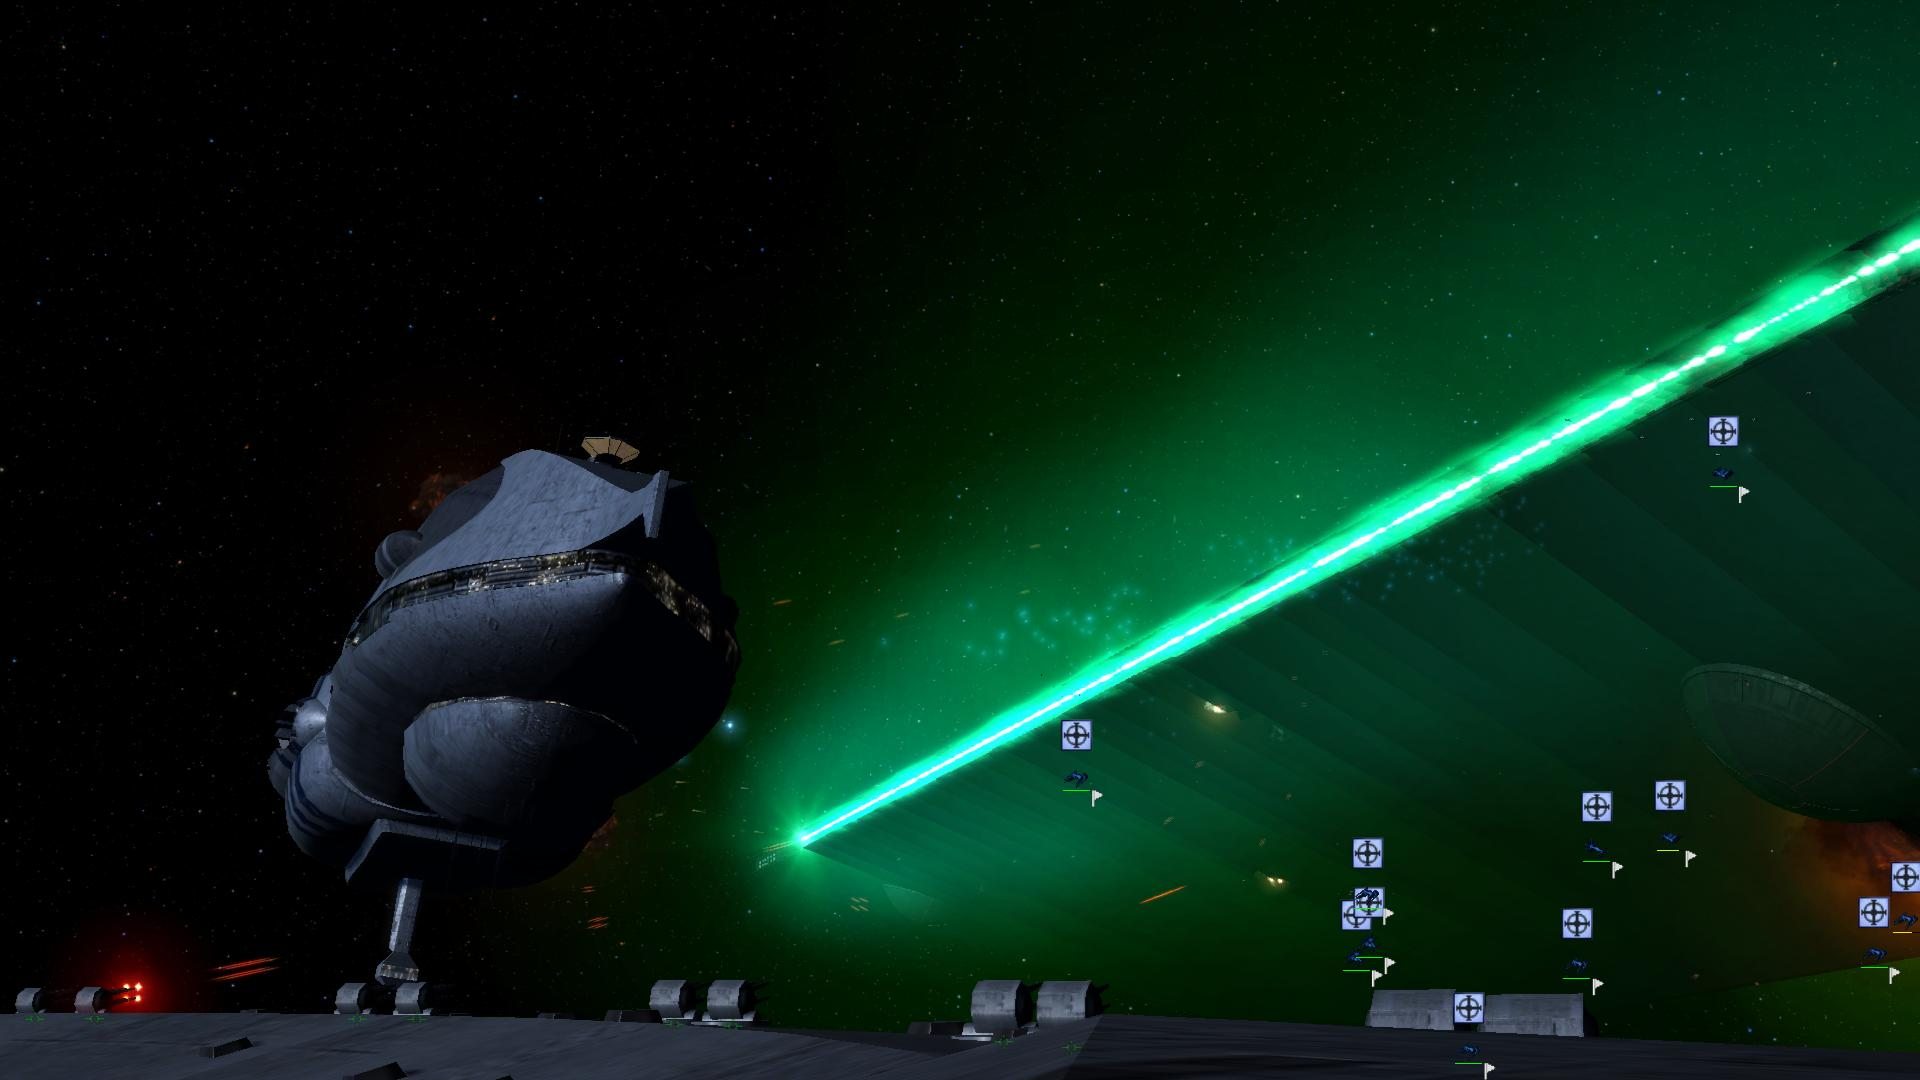 Eclipse Image Empire At War Remake Galactic Civil War Mod For Star Wars Empire At War Forces Of Corruption Mod Db